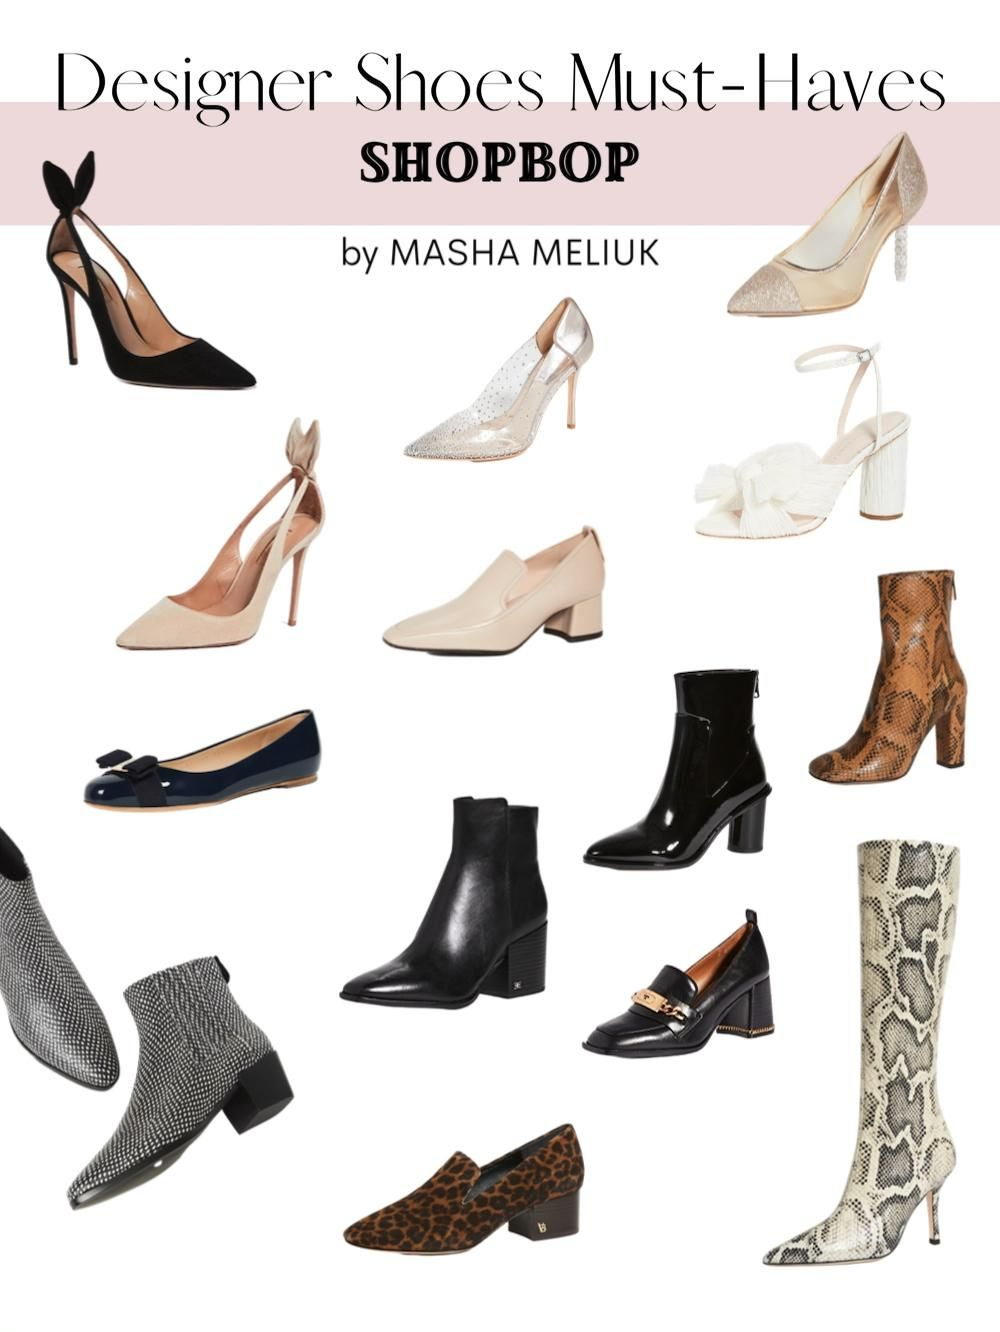 Classical timeless designer shoes - perfect fit for any outfit. Flats, booties, loafers, low heel, high heel, and snake skin boots #shoes #shoeshighheels #shoesaddict #shoegame #shoeaesthetic #designer #designerwear #flats #bootsforwomen #heels #heelsaddict